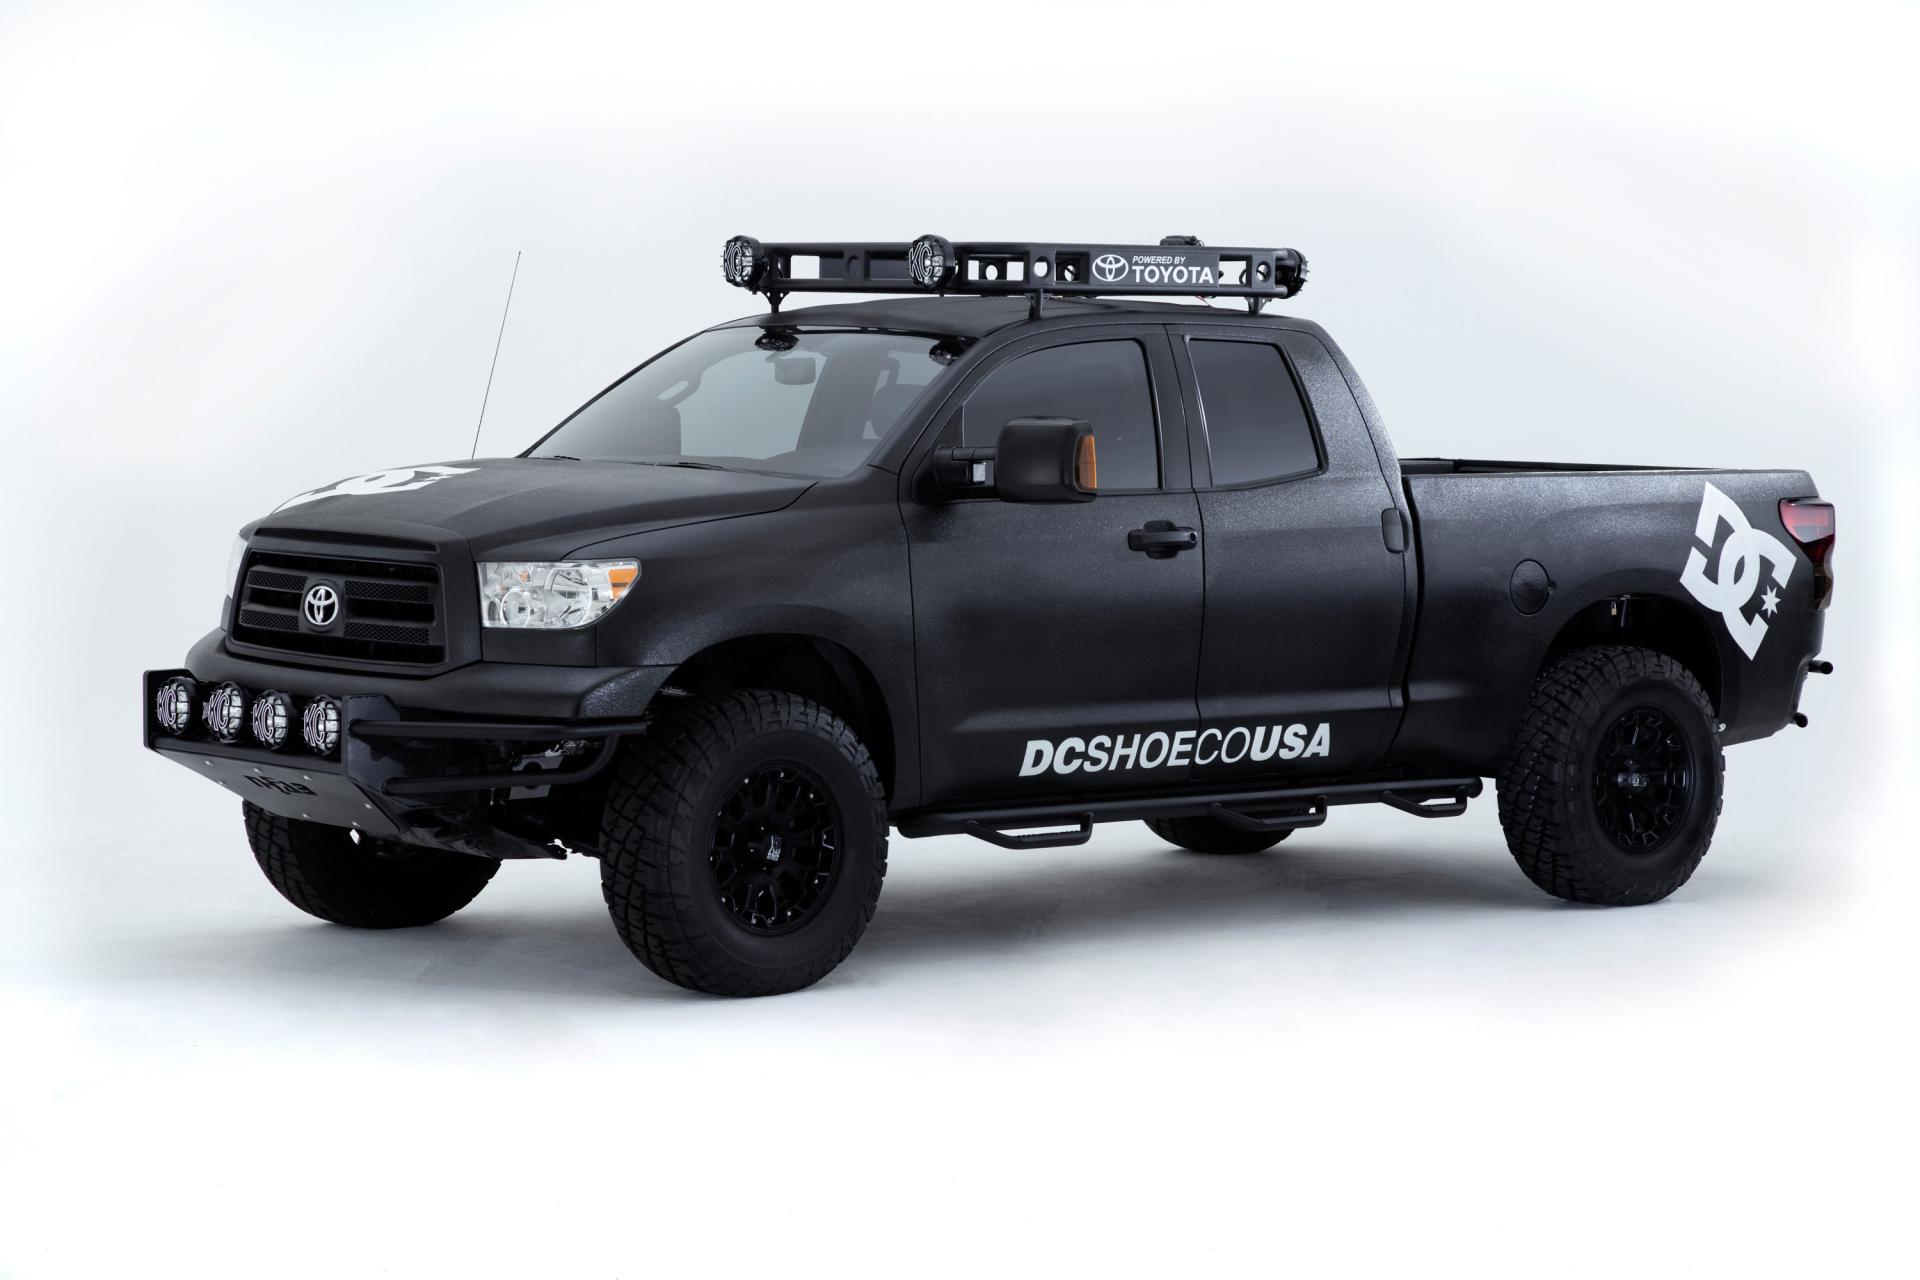 2011 Toyota Ultimate Motocross Tundra News and Information